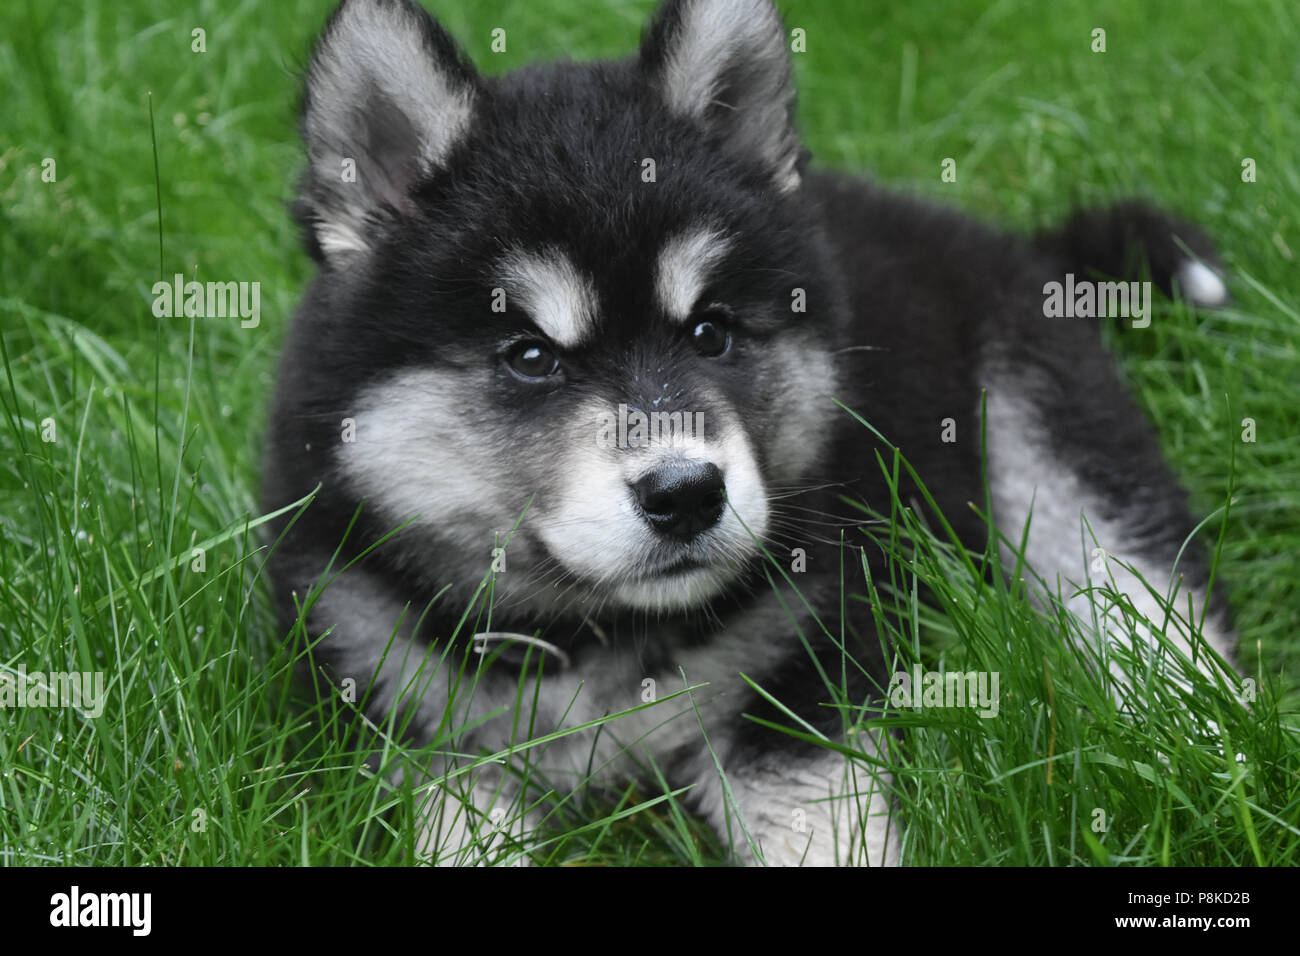 Close Up Of A Husky Puppy With Fluffy Black And White Fur Stock Photo Alamy